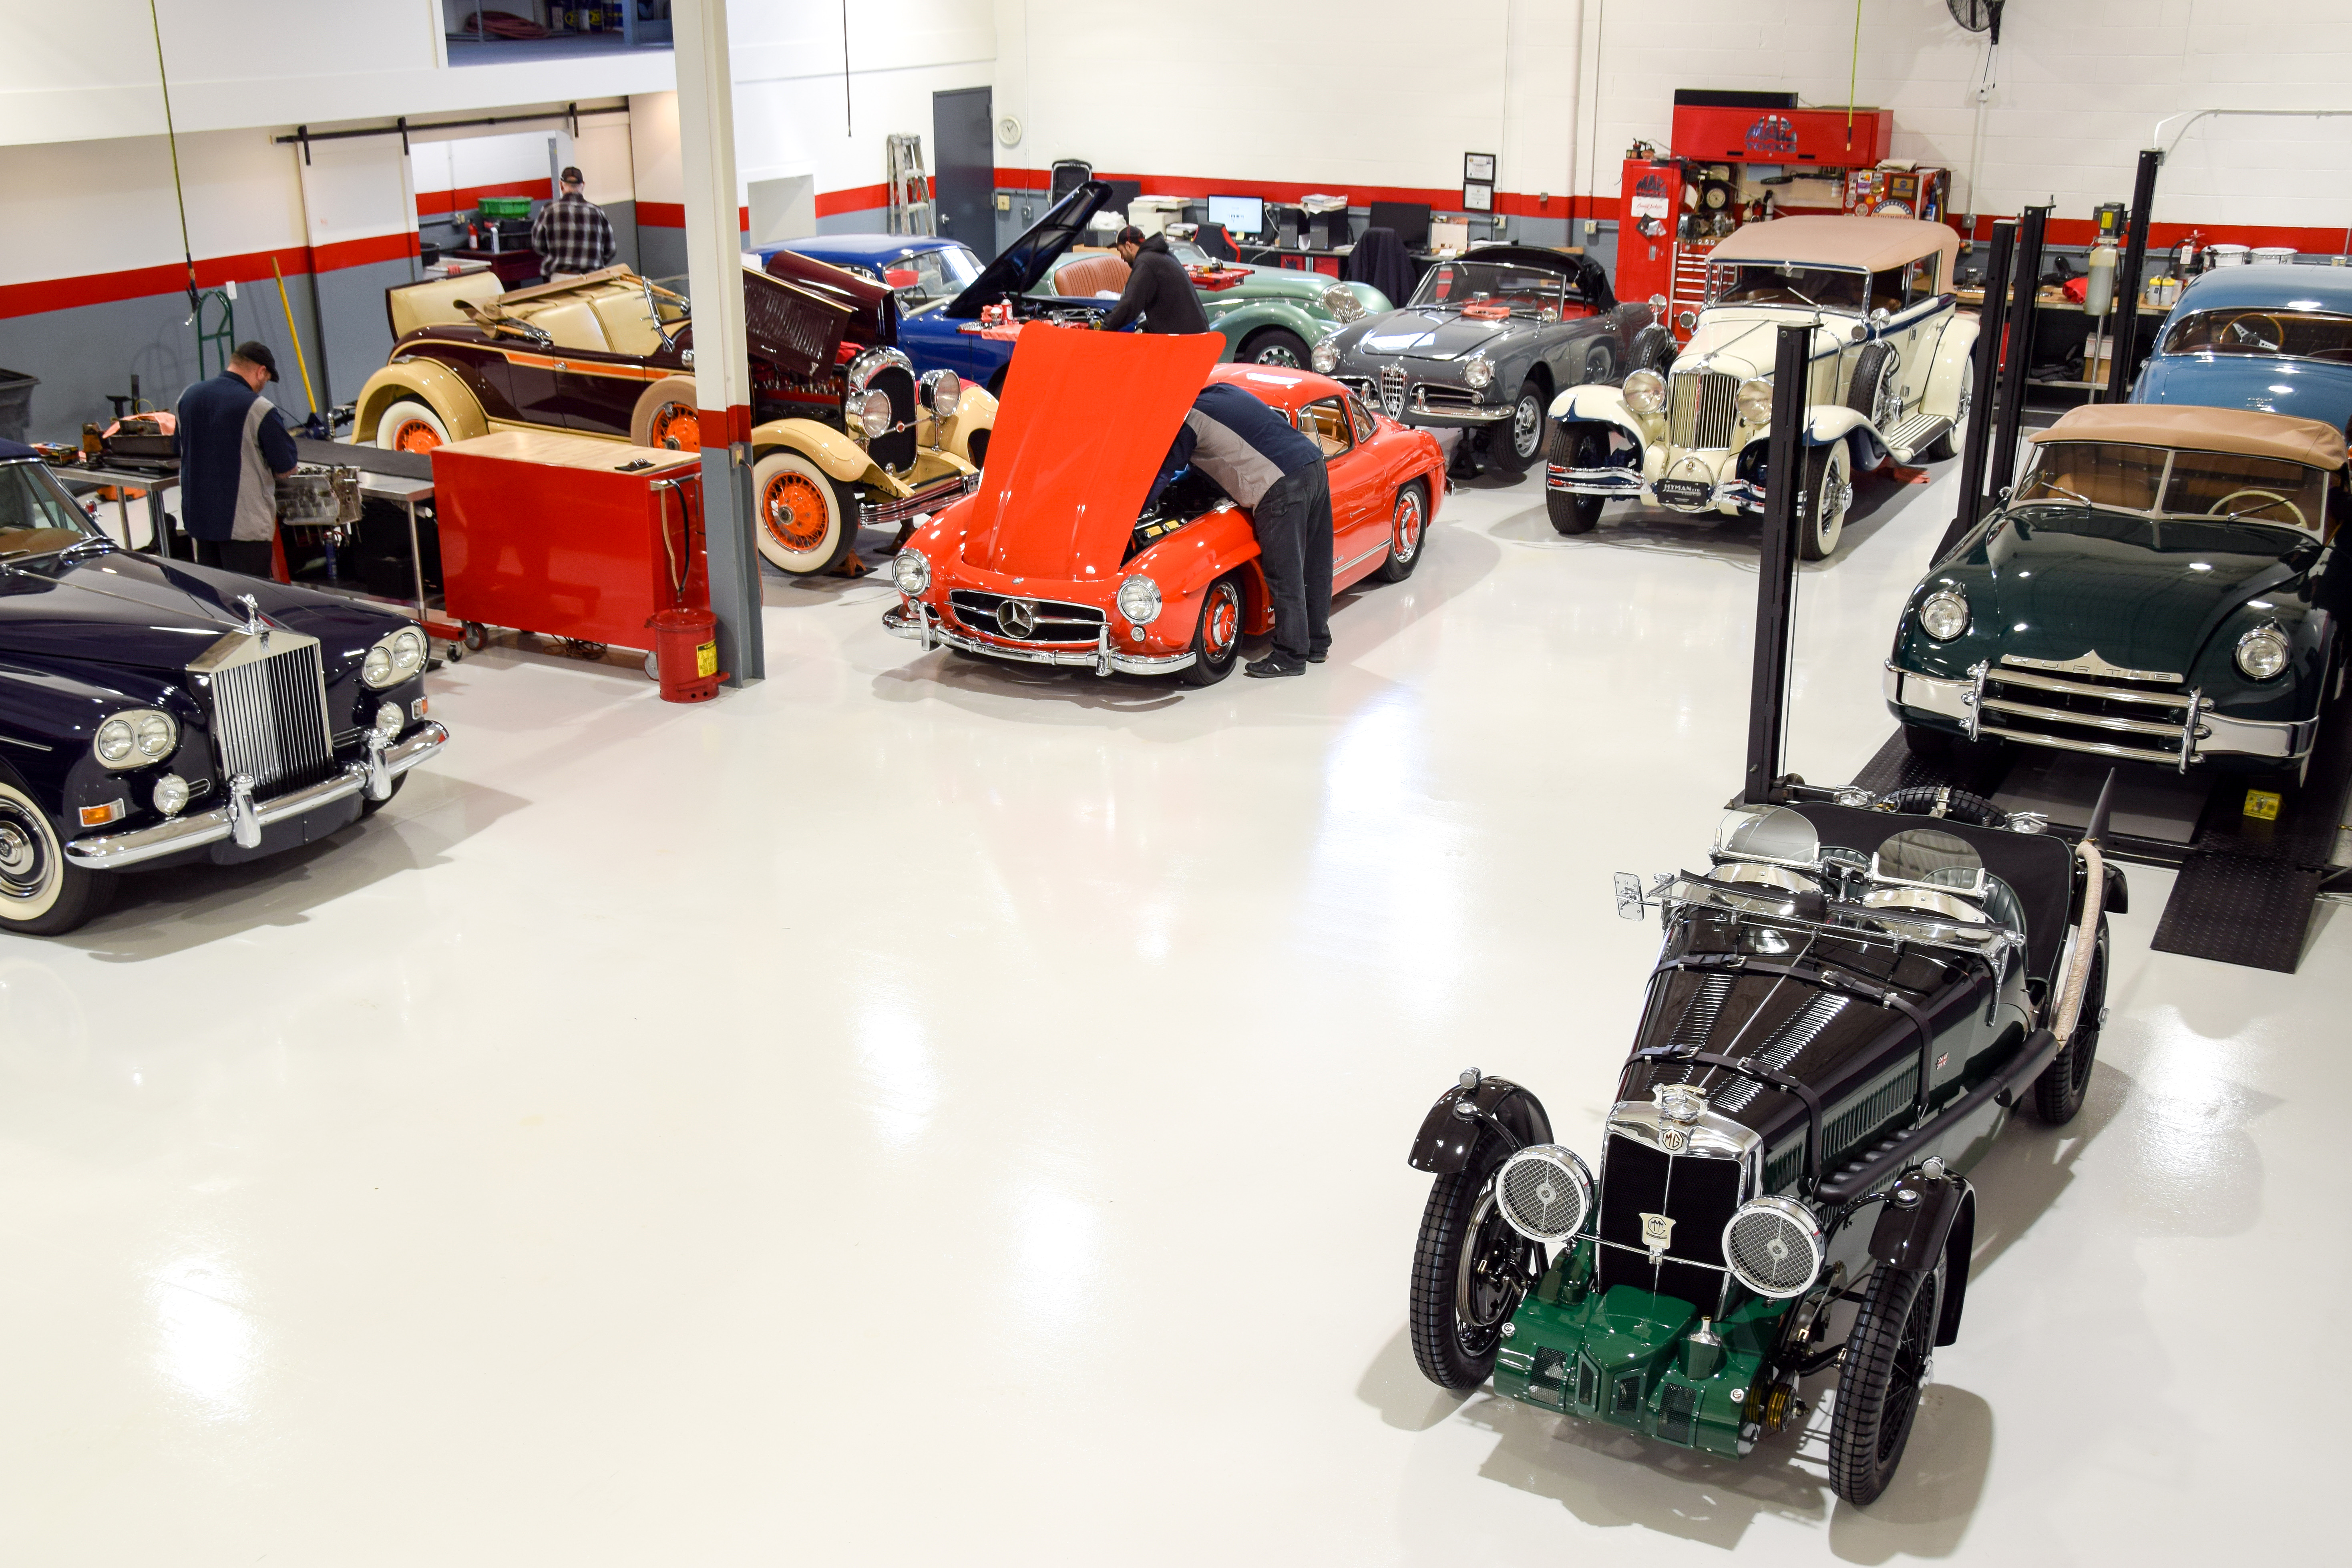 Mark Hyman, Mark Hyman speaks out, and speaks up for the car-collecting community, ClassicCars.com Journal